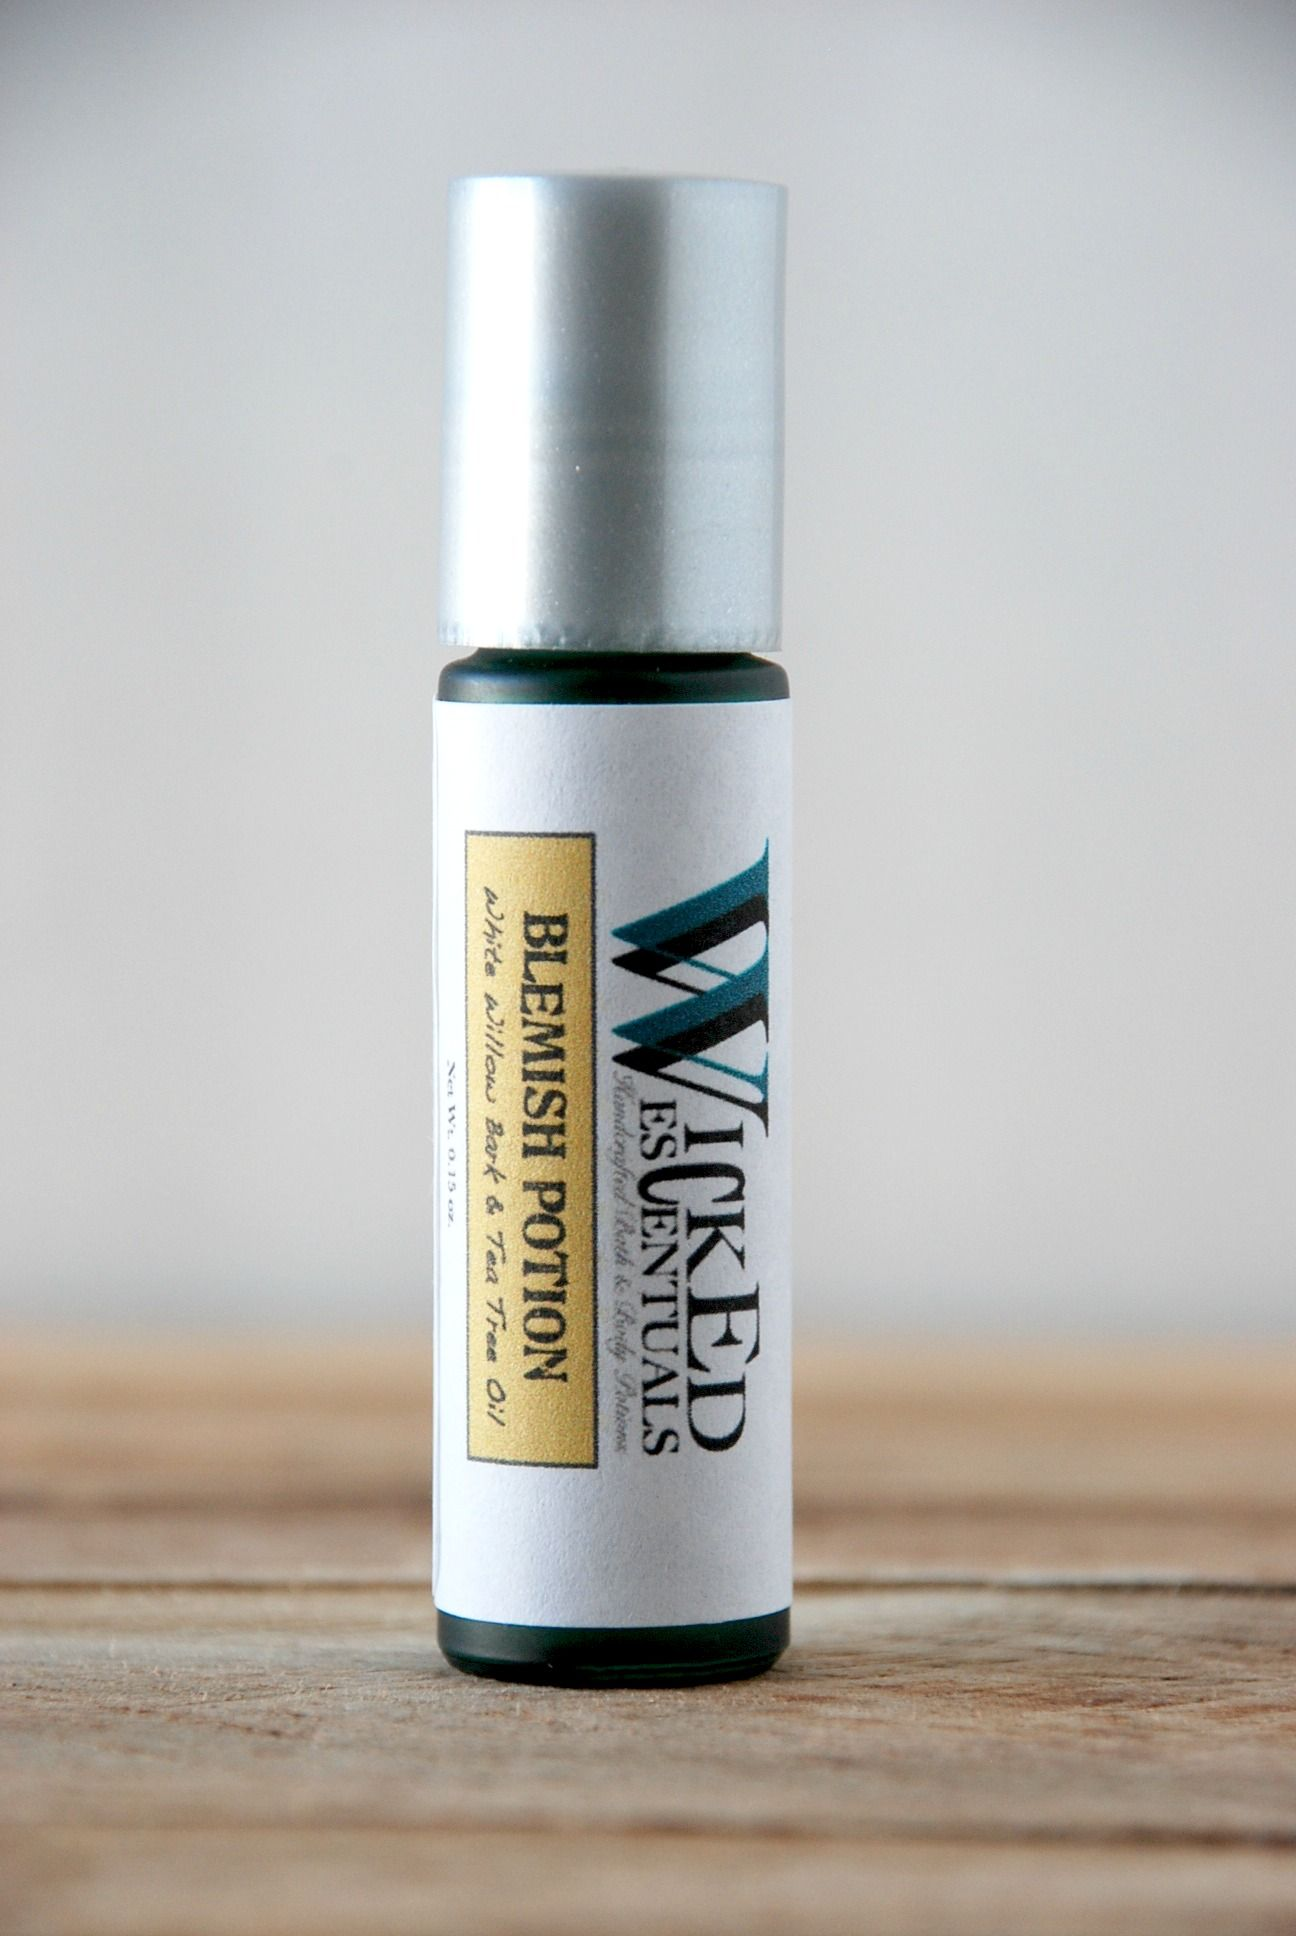 Wicked Escentuals blemish potion is formulated with tea tree oil, white willow bark (nature's salicylic acid) and alcohol-free witch hazel to help skin suffering with acne.